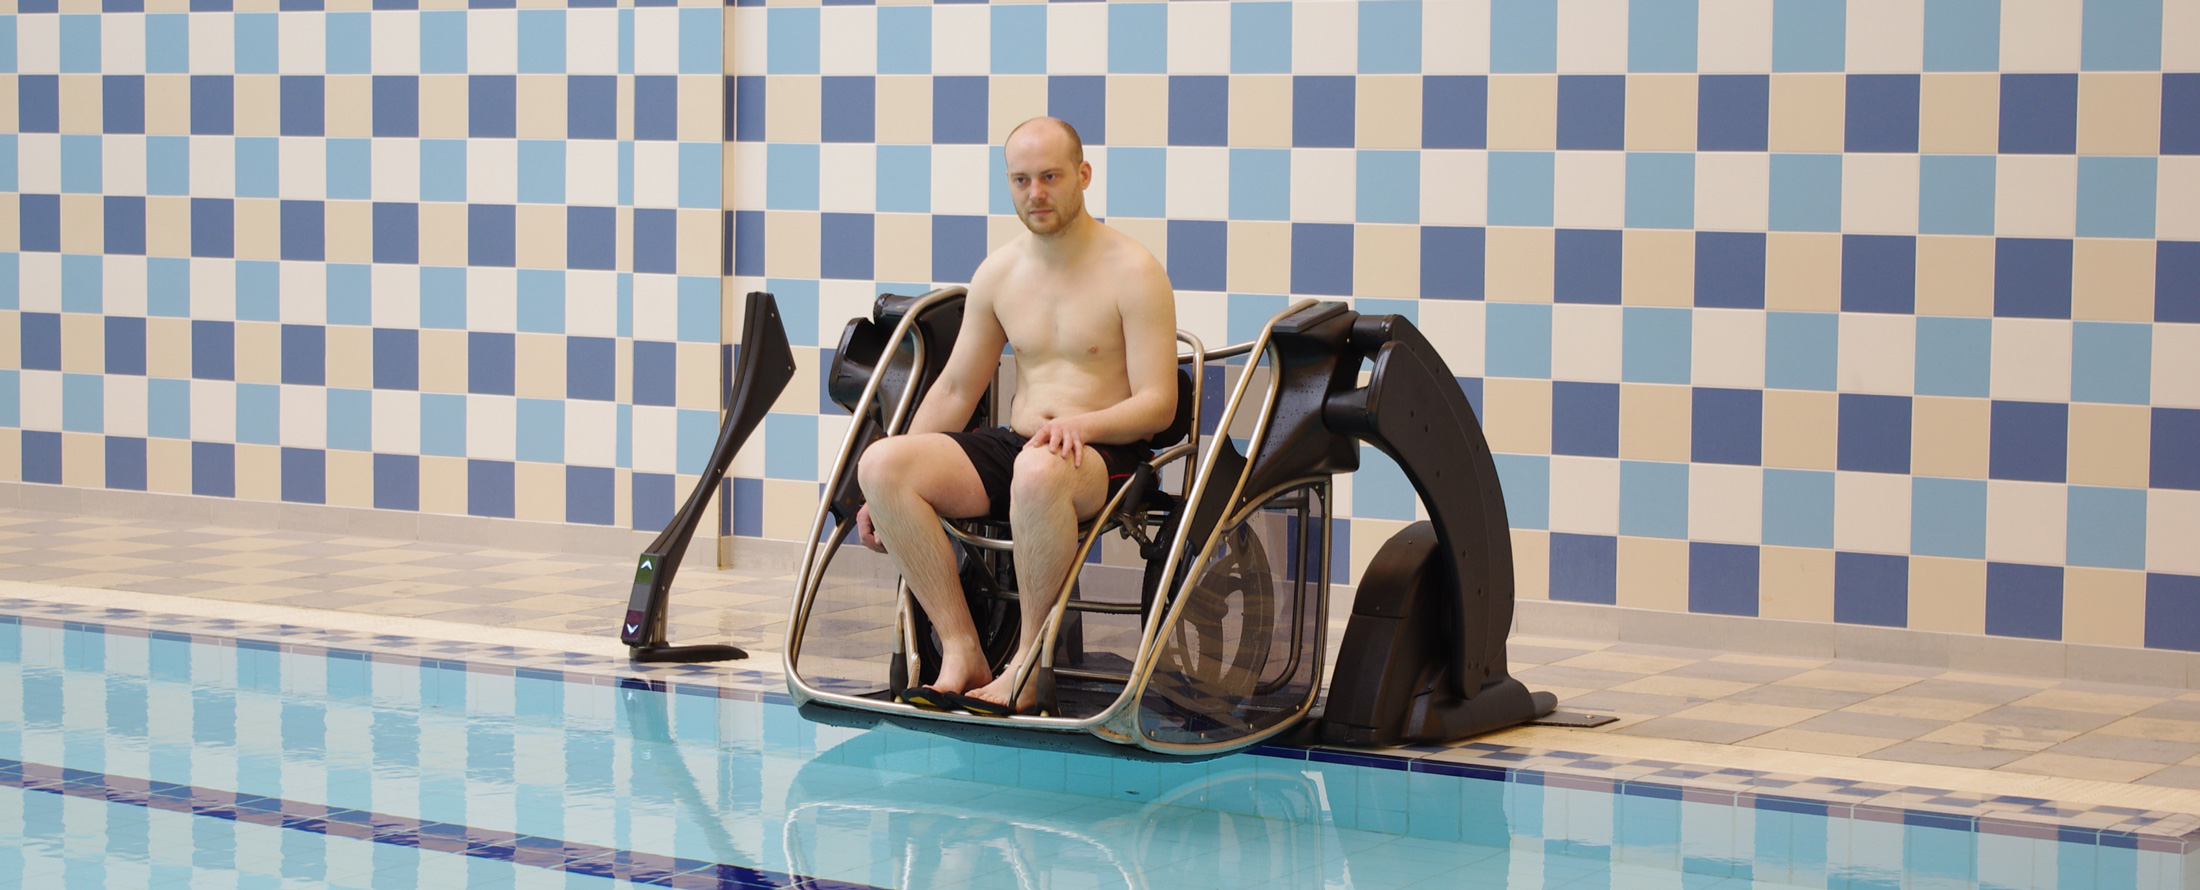 Pool lift with male wheelchair user present on platform.